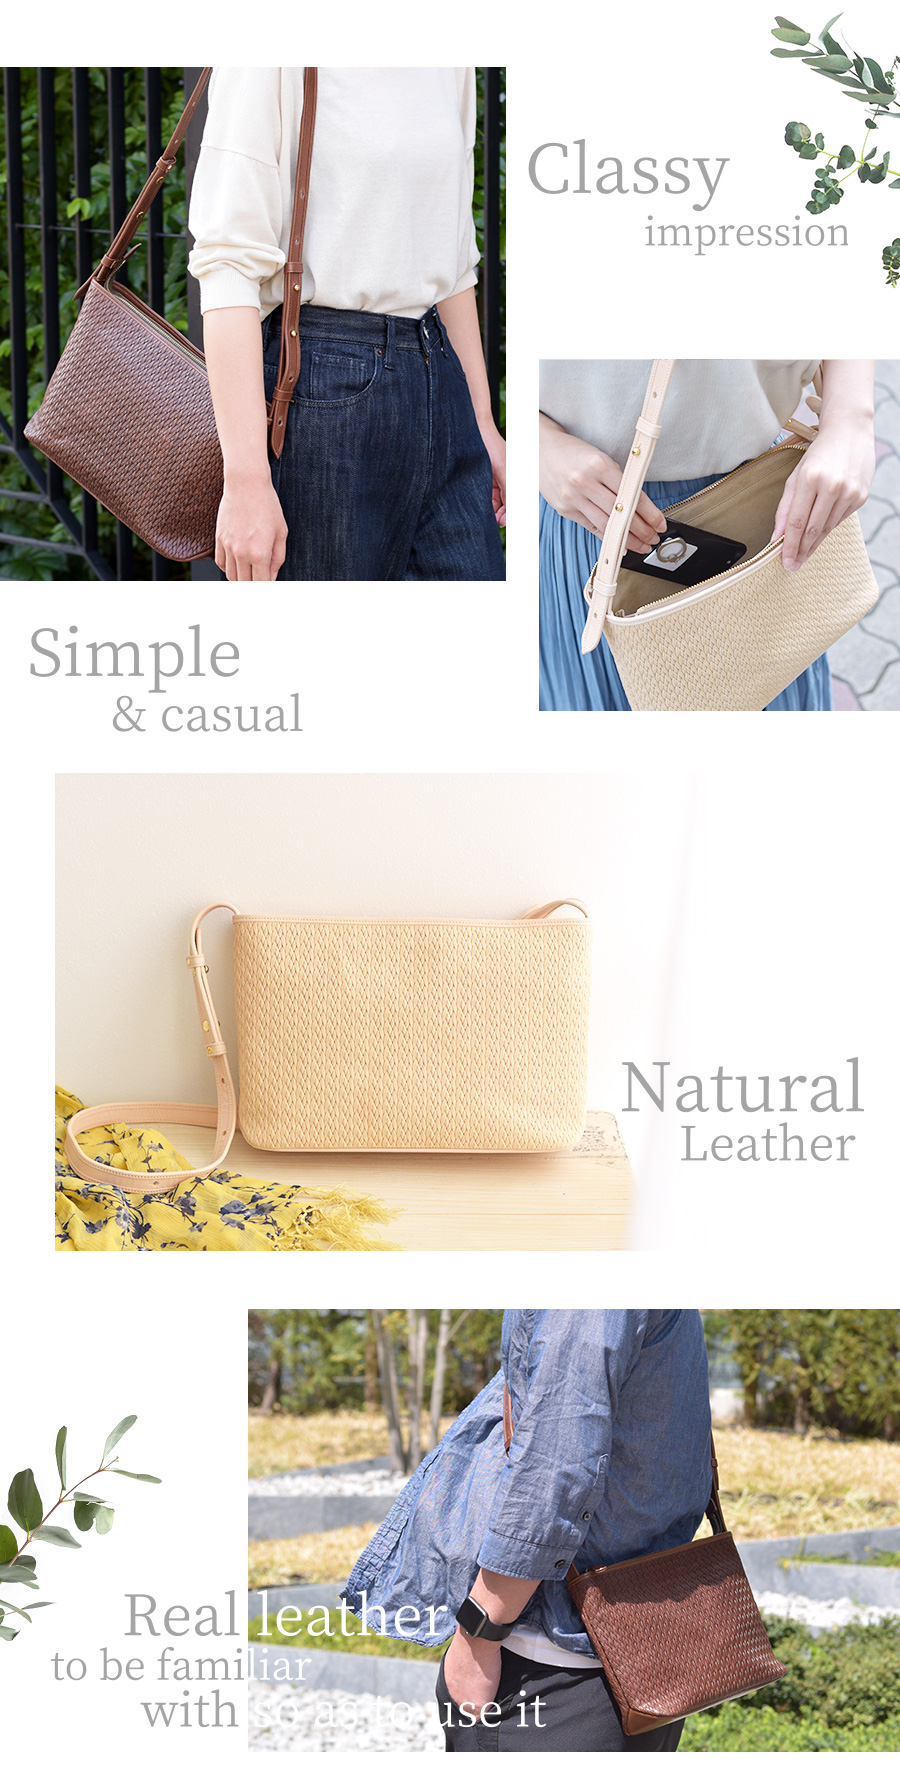 Classy impression, Simple & casual, Natural leather, Natural leather to be familiar with so as to use it